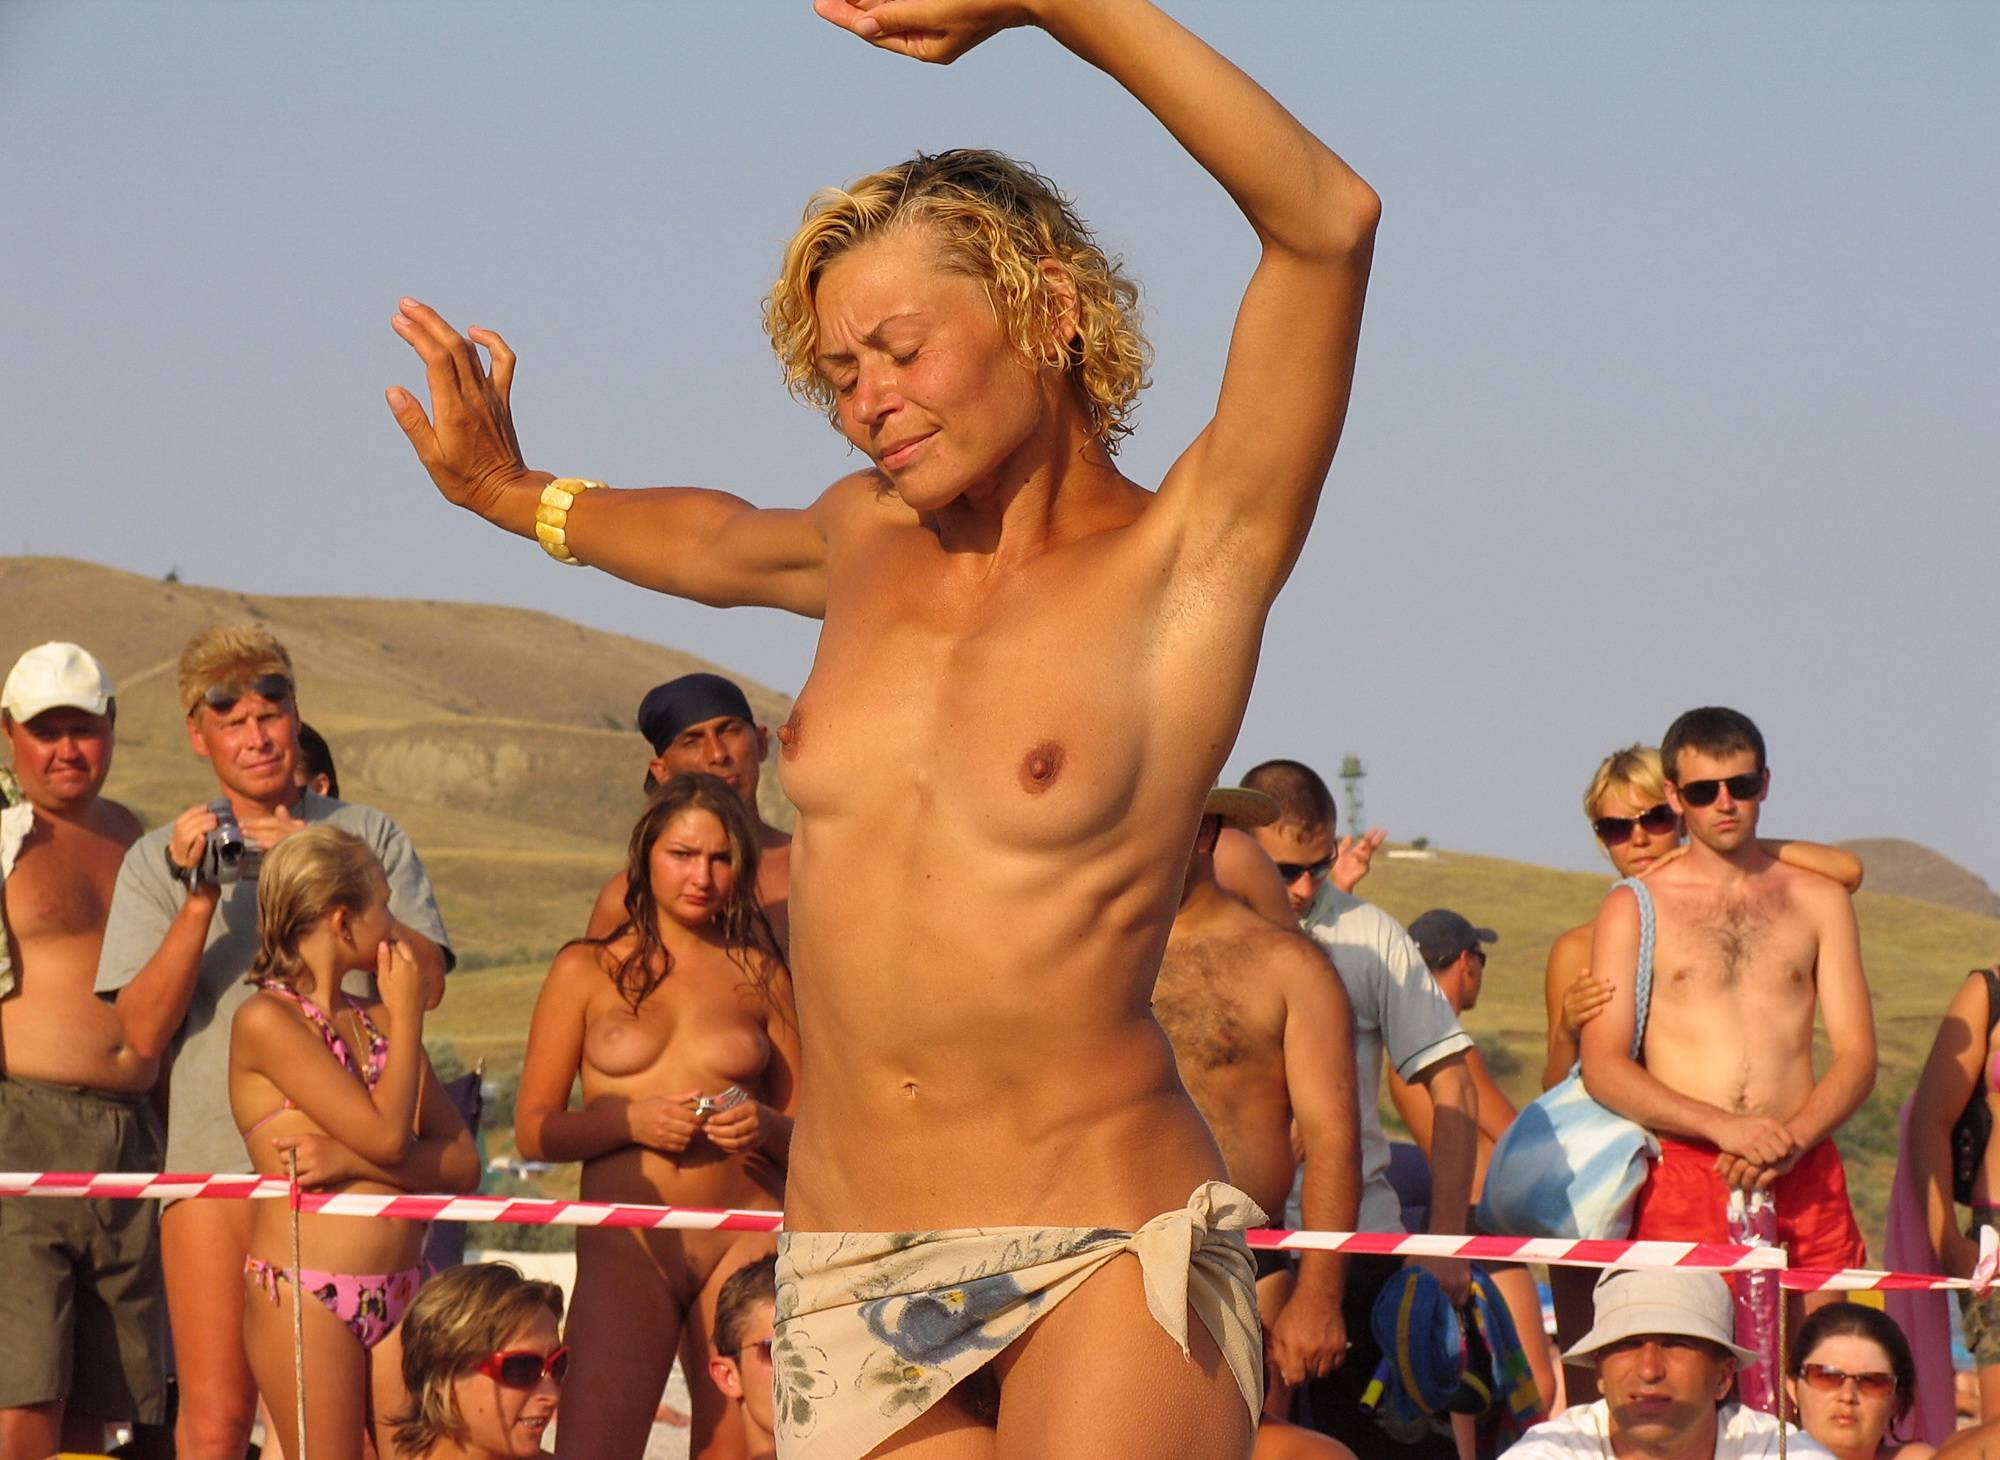 Nudist Photos Daytime Tribal Dancing - 2